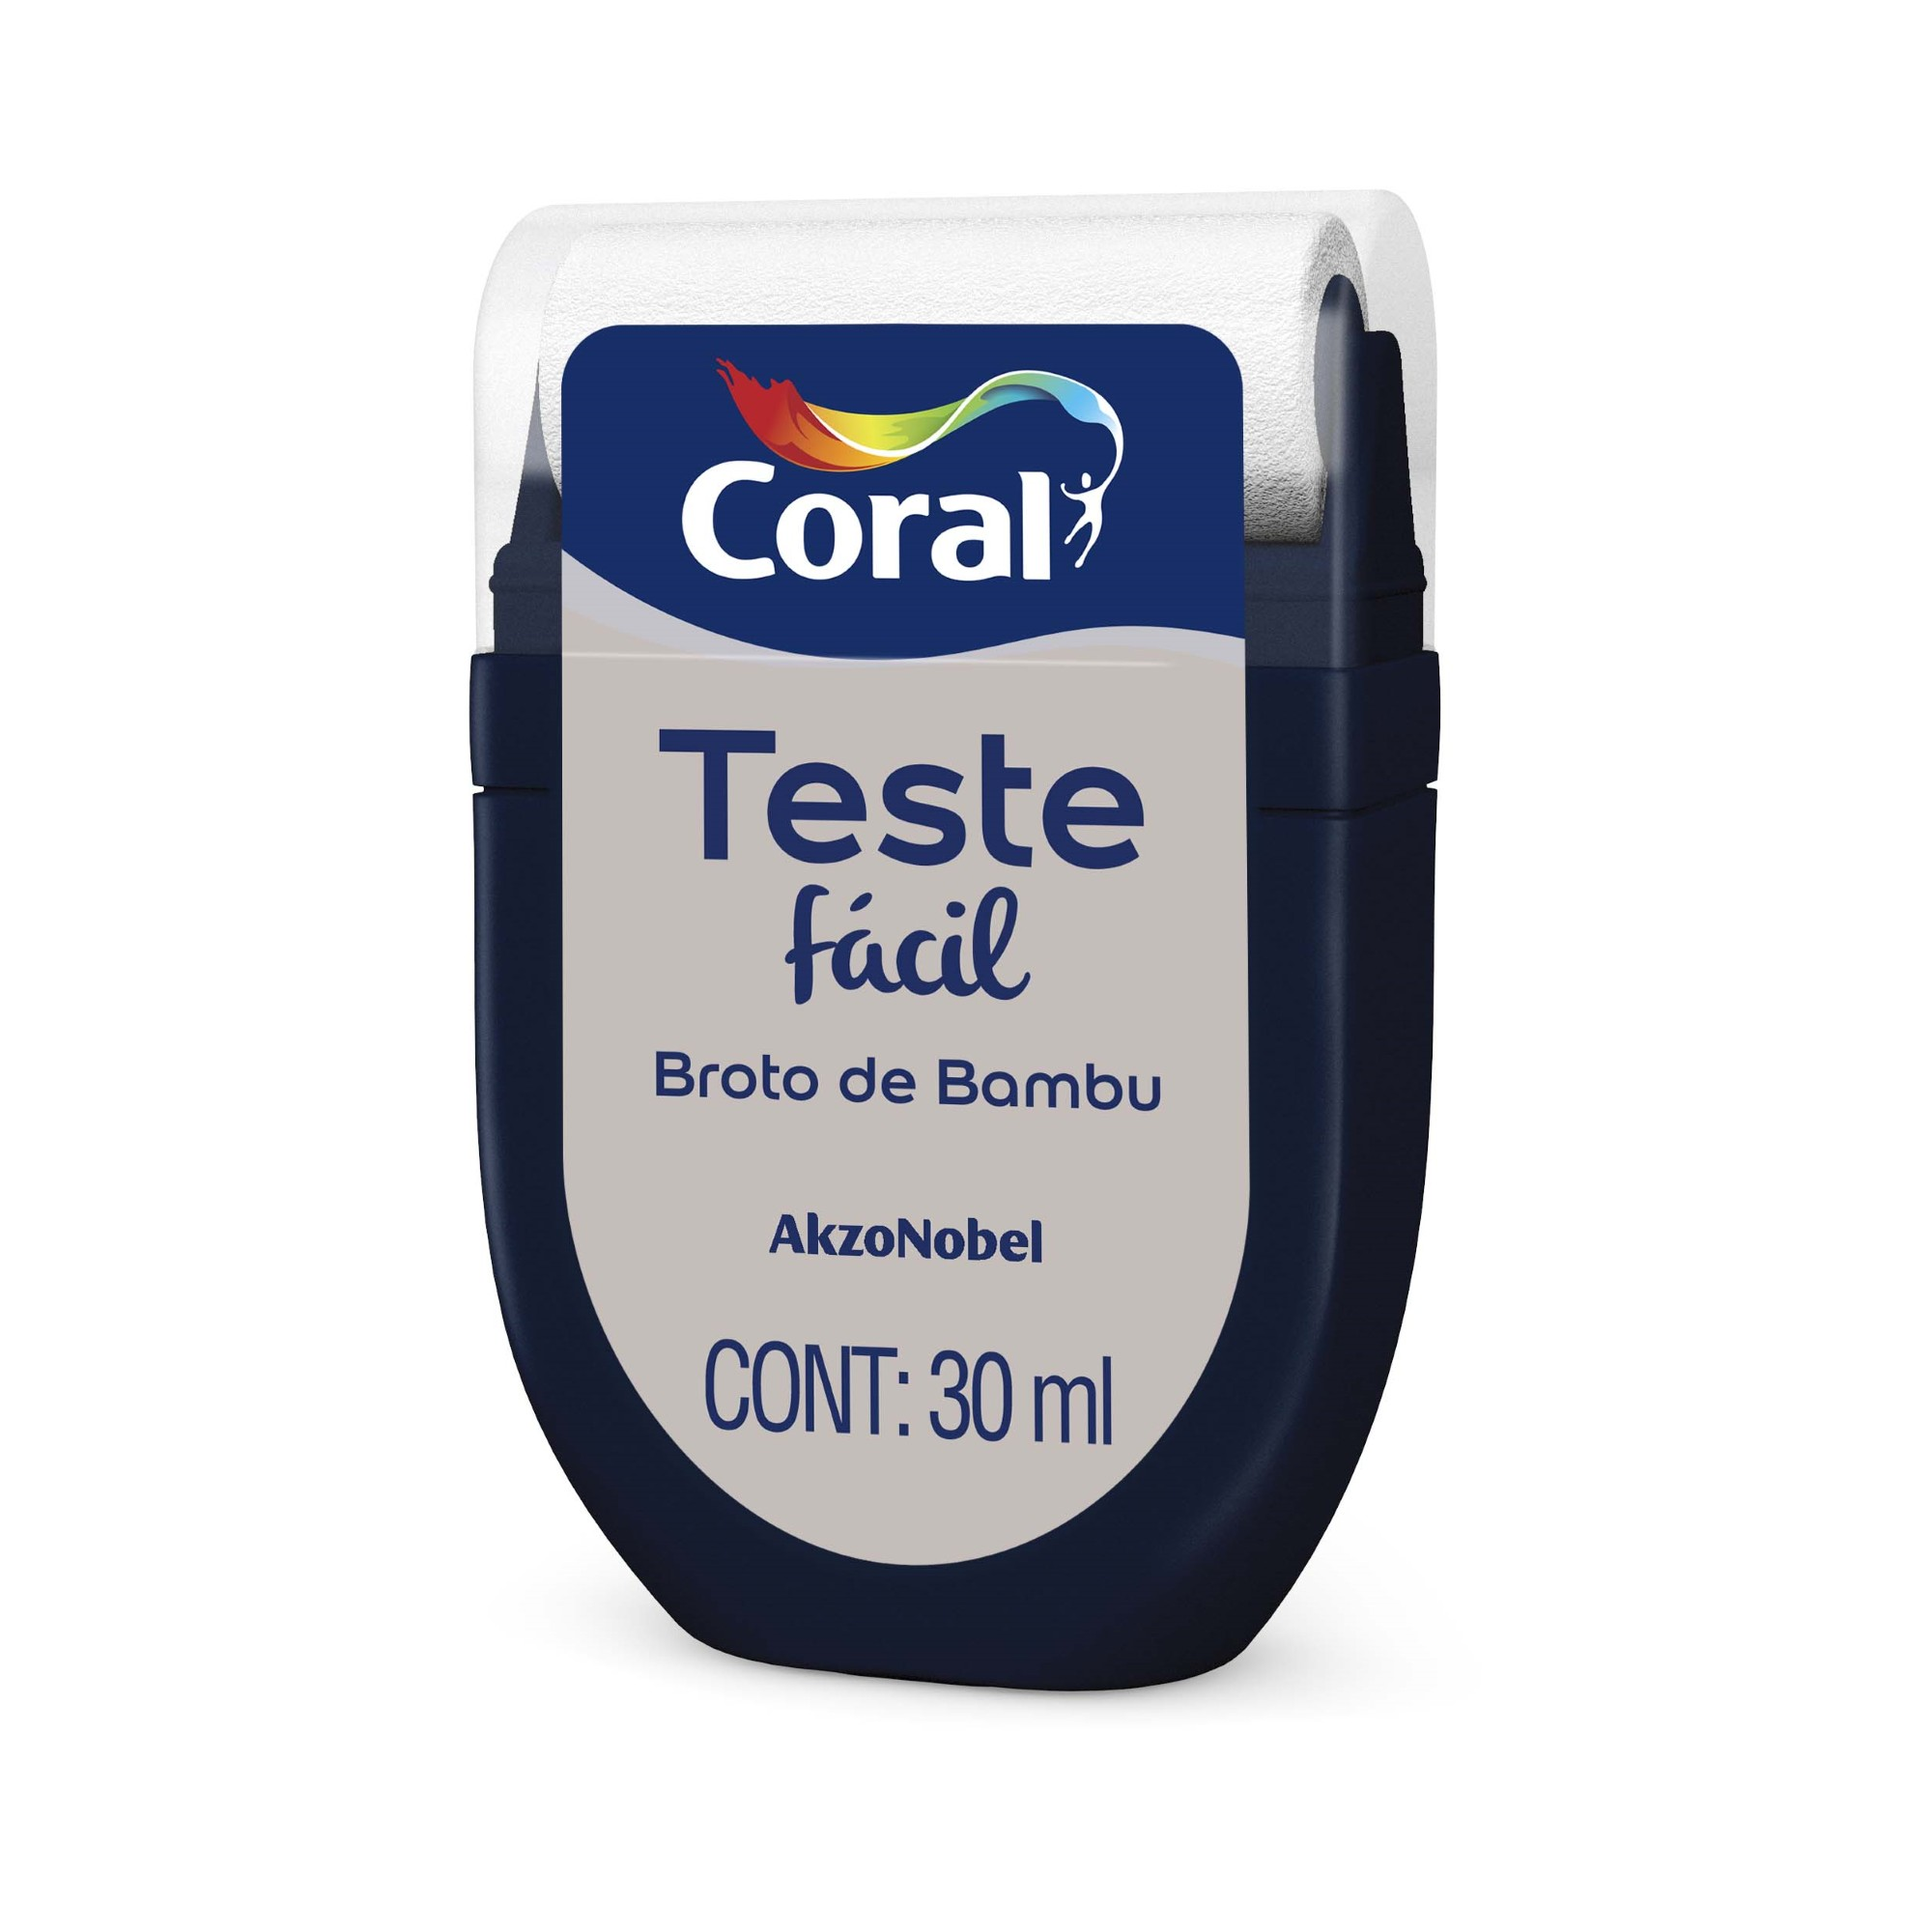 Teste Facil 30ml Broto de Bambu - Coral